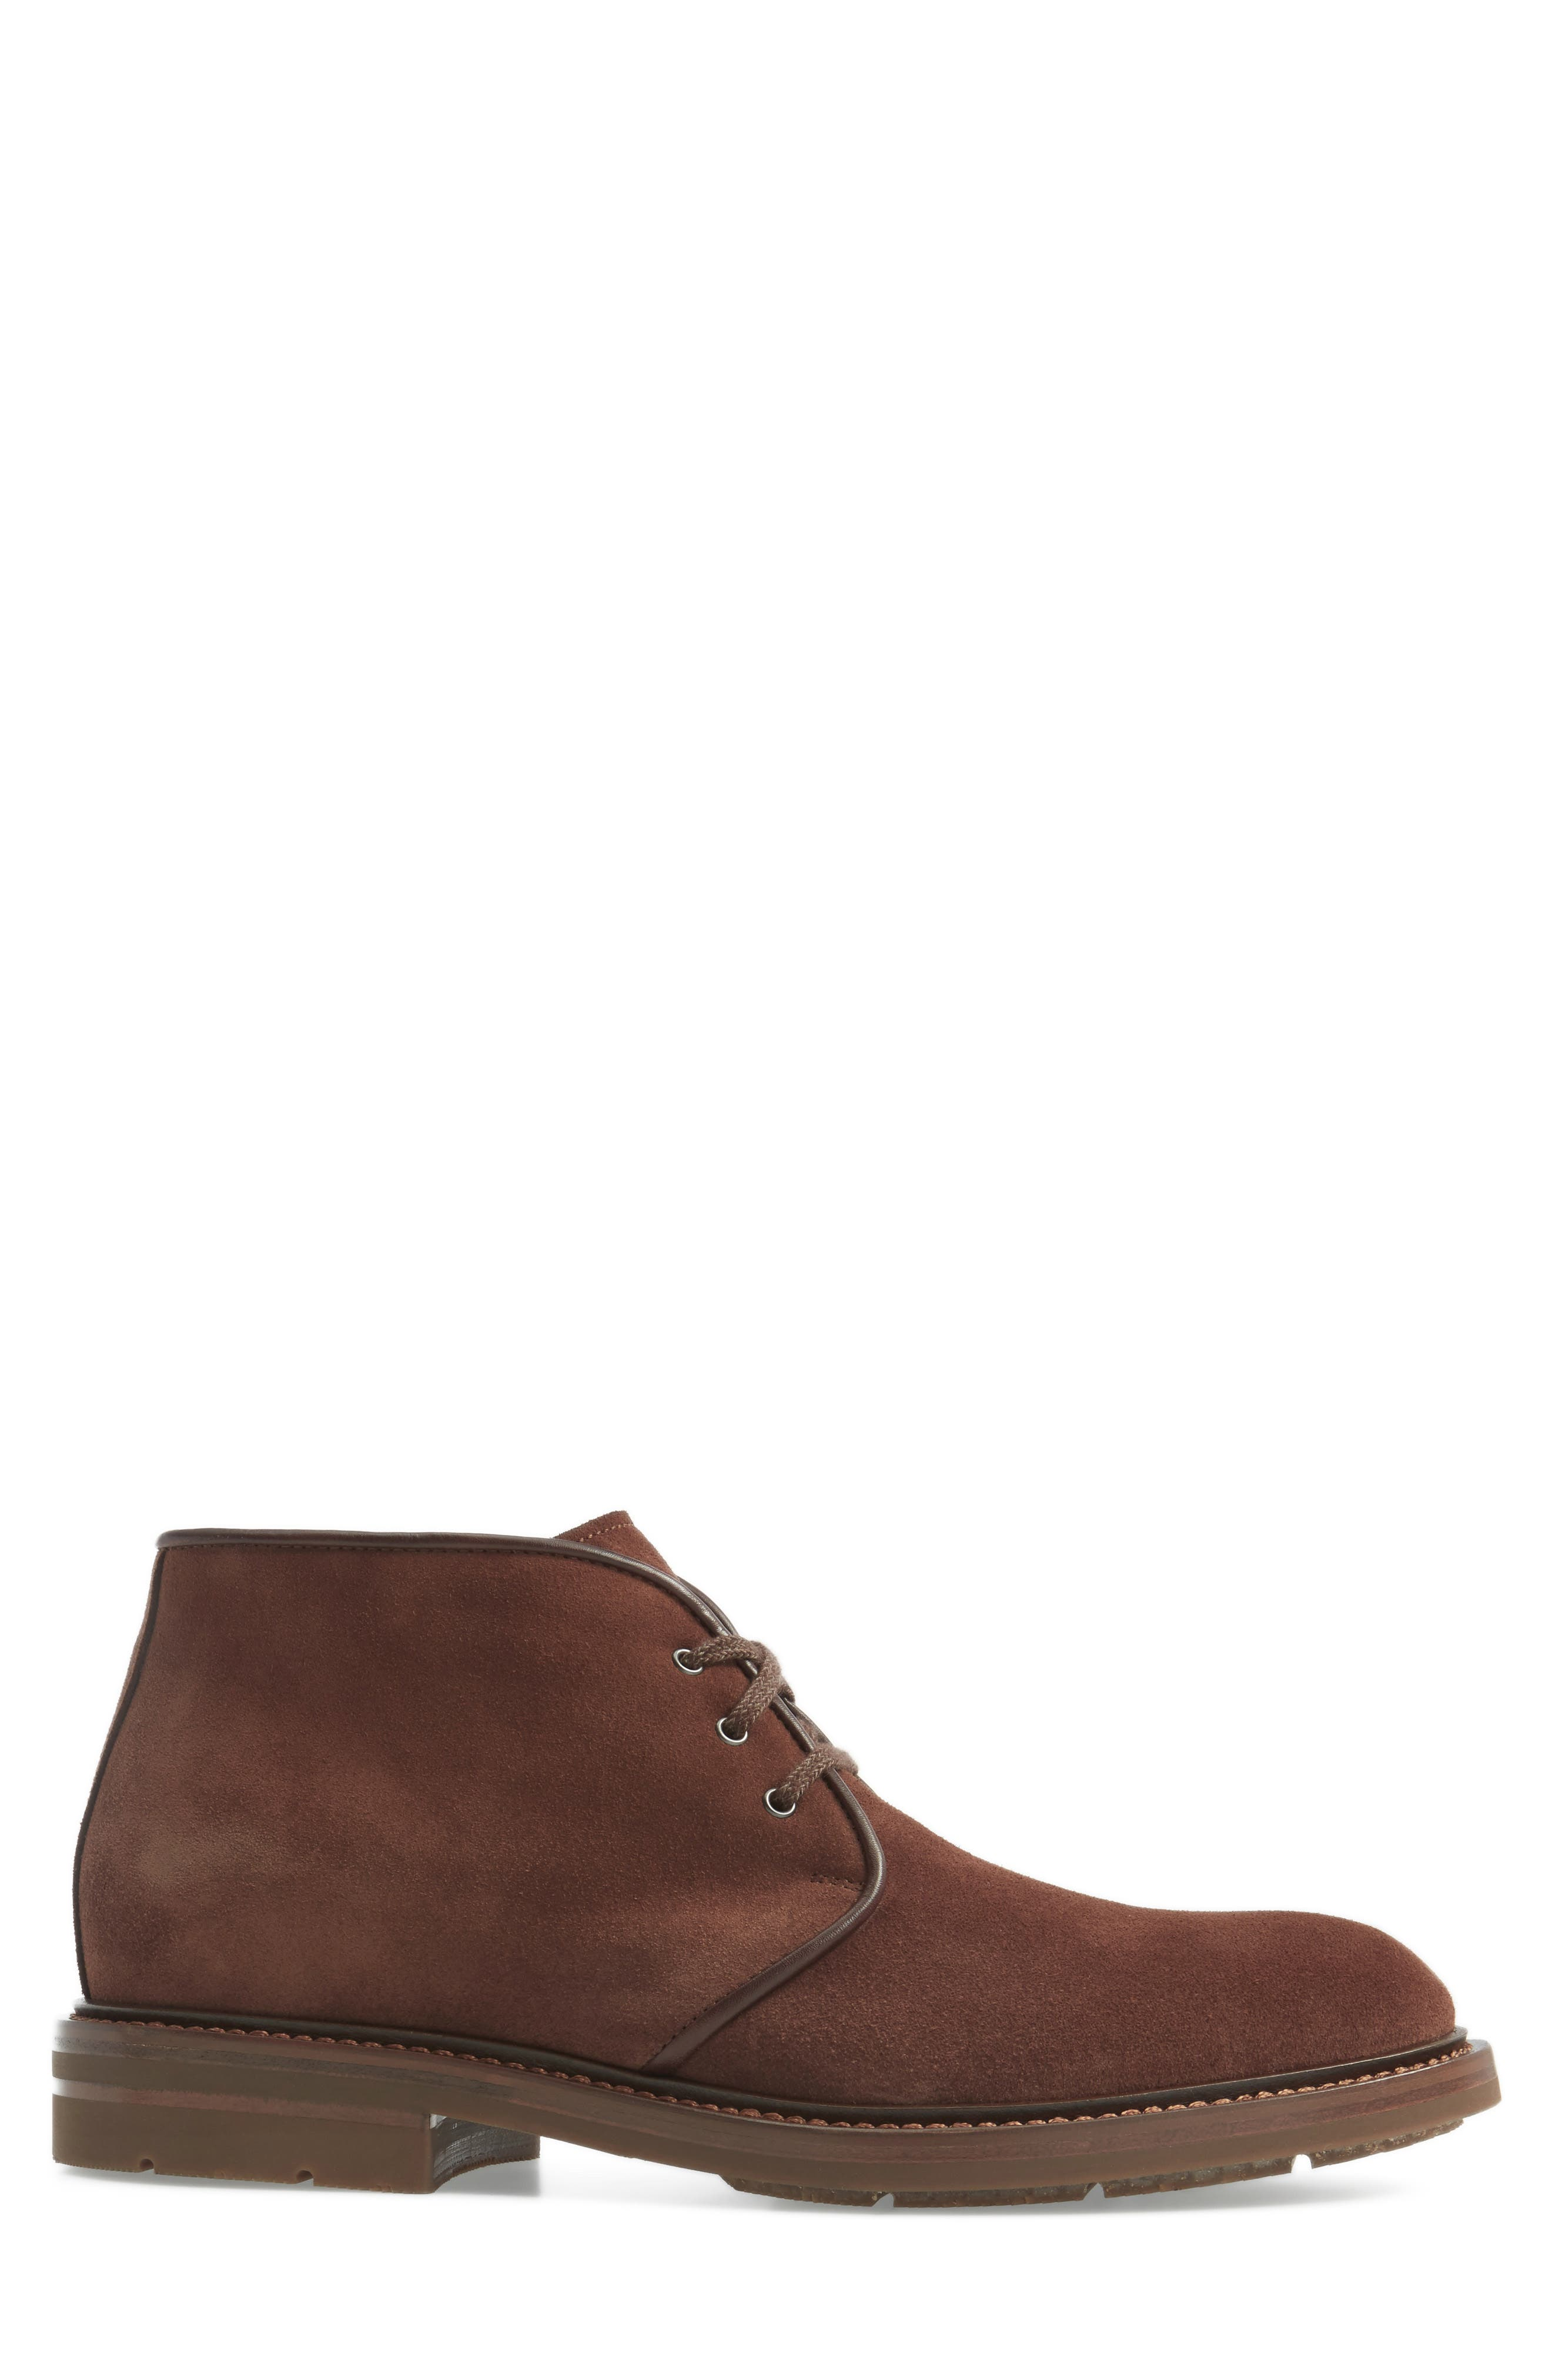 Alternate Image 3  - Aquatalia Raphael Chukka Boot (Men)